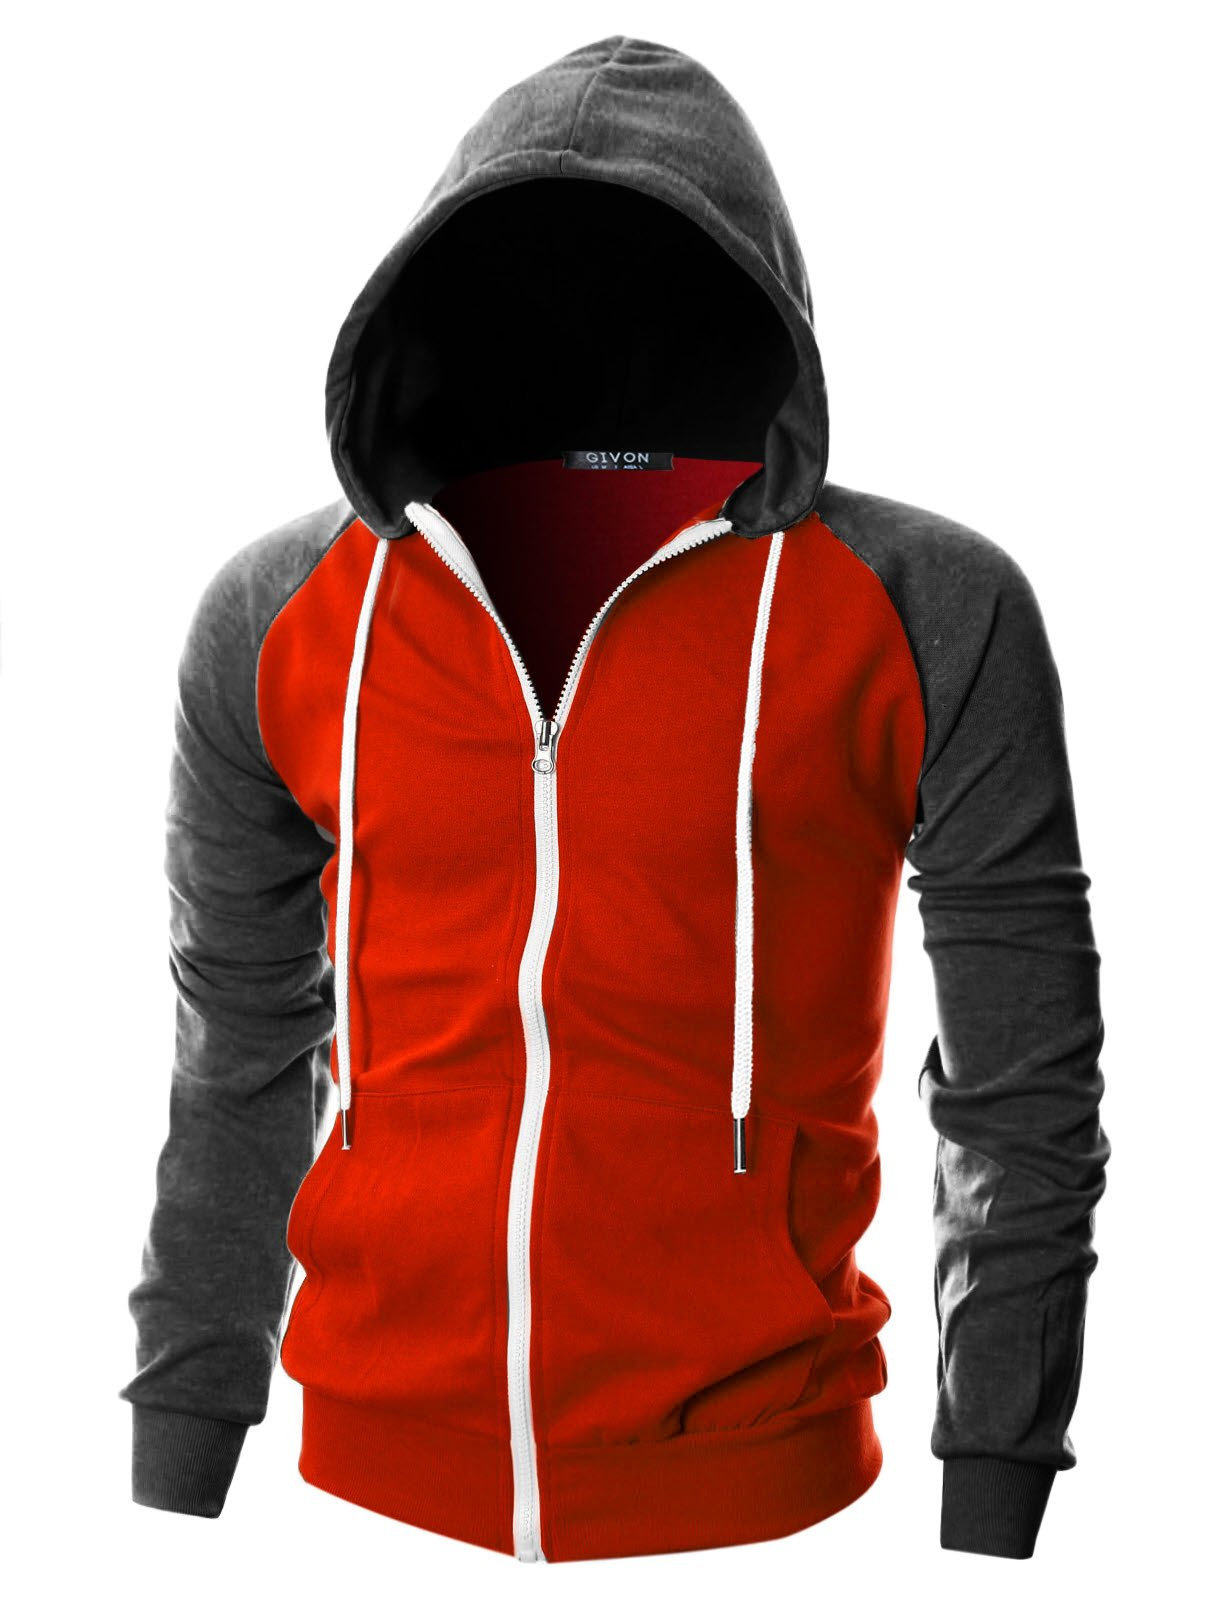 GIVON Mens Slim Fit Long Sleeve Lightweight Raglan Zip-up Hoodie with Kanga Pocket/DCF017-REDCHARCOAL-M